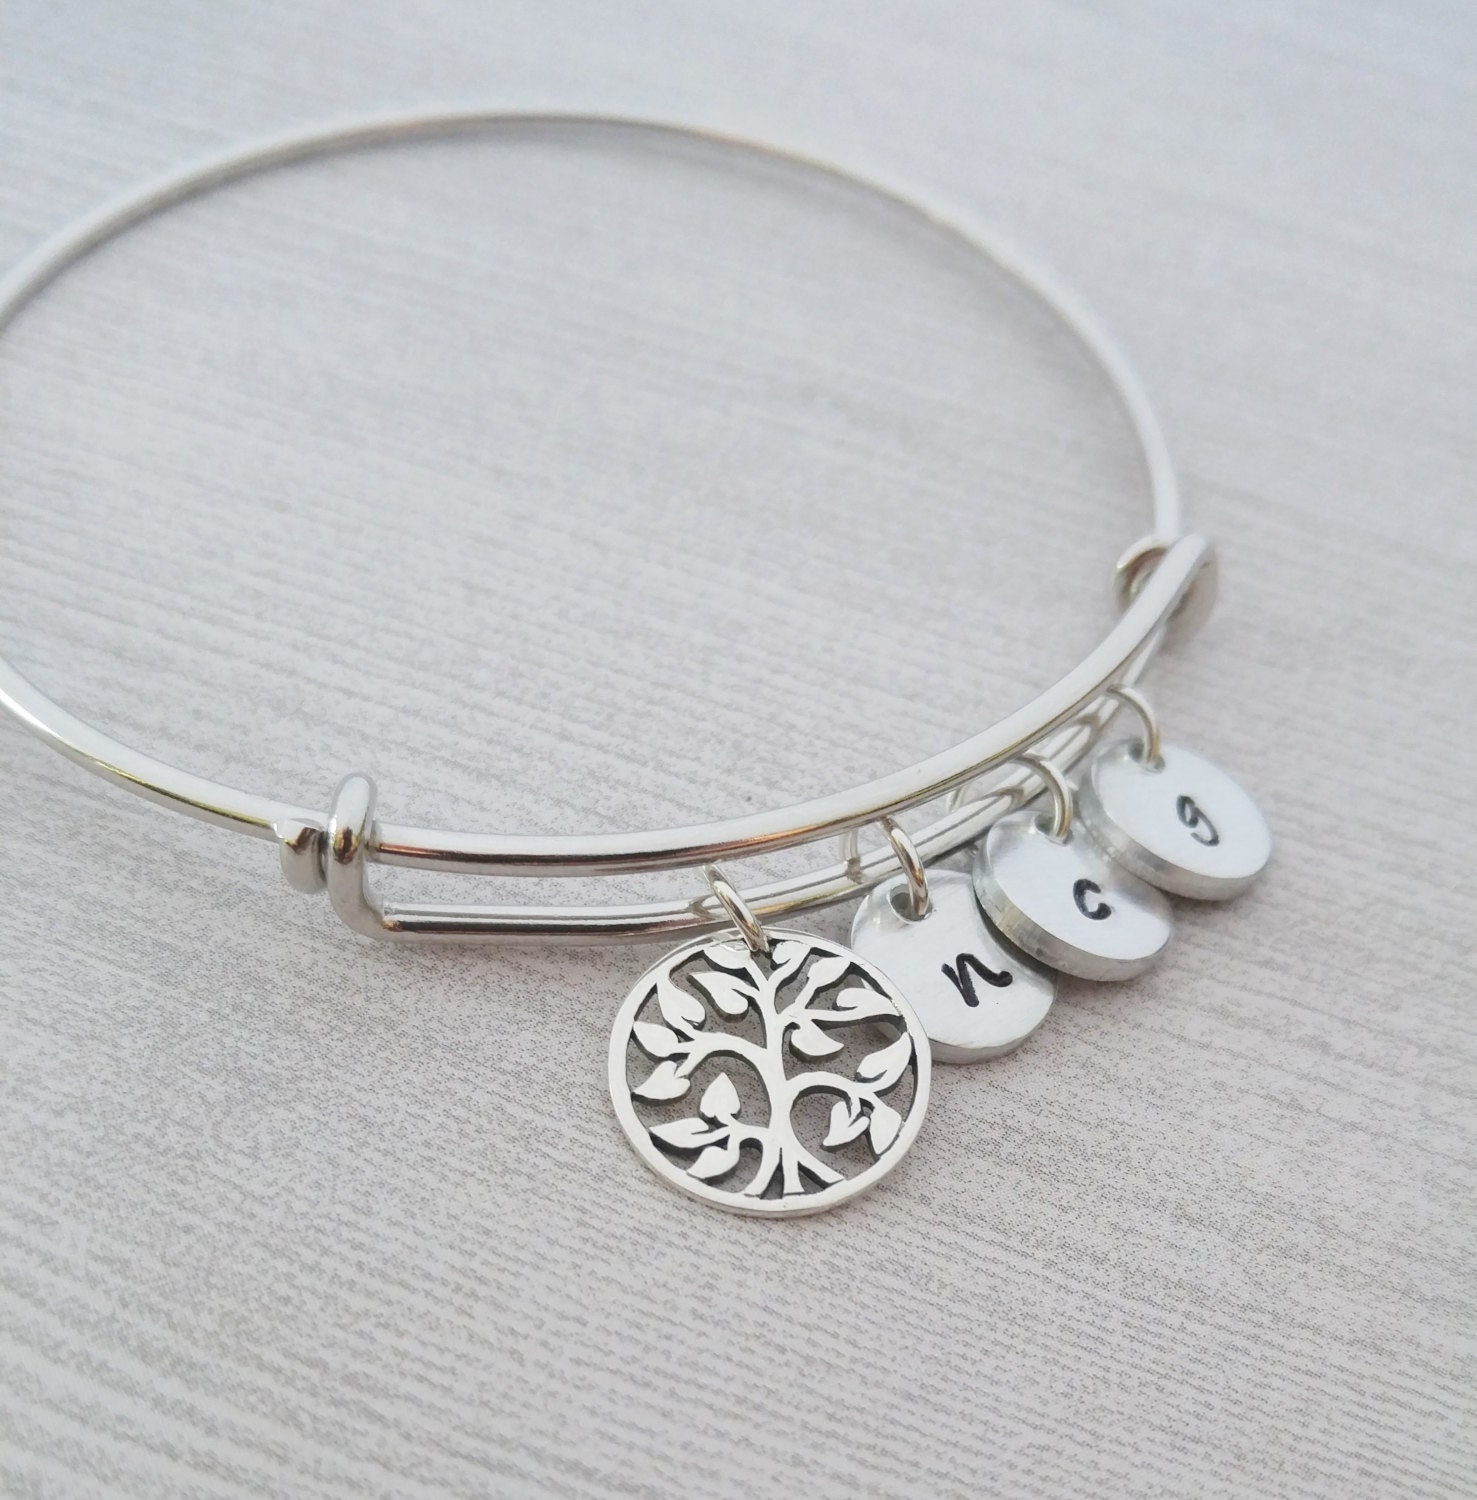 Personalized Bracelet Charms: Family Tree Bracelet Personalized Bangle Bracelet Tree Of